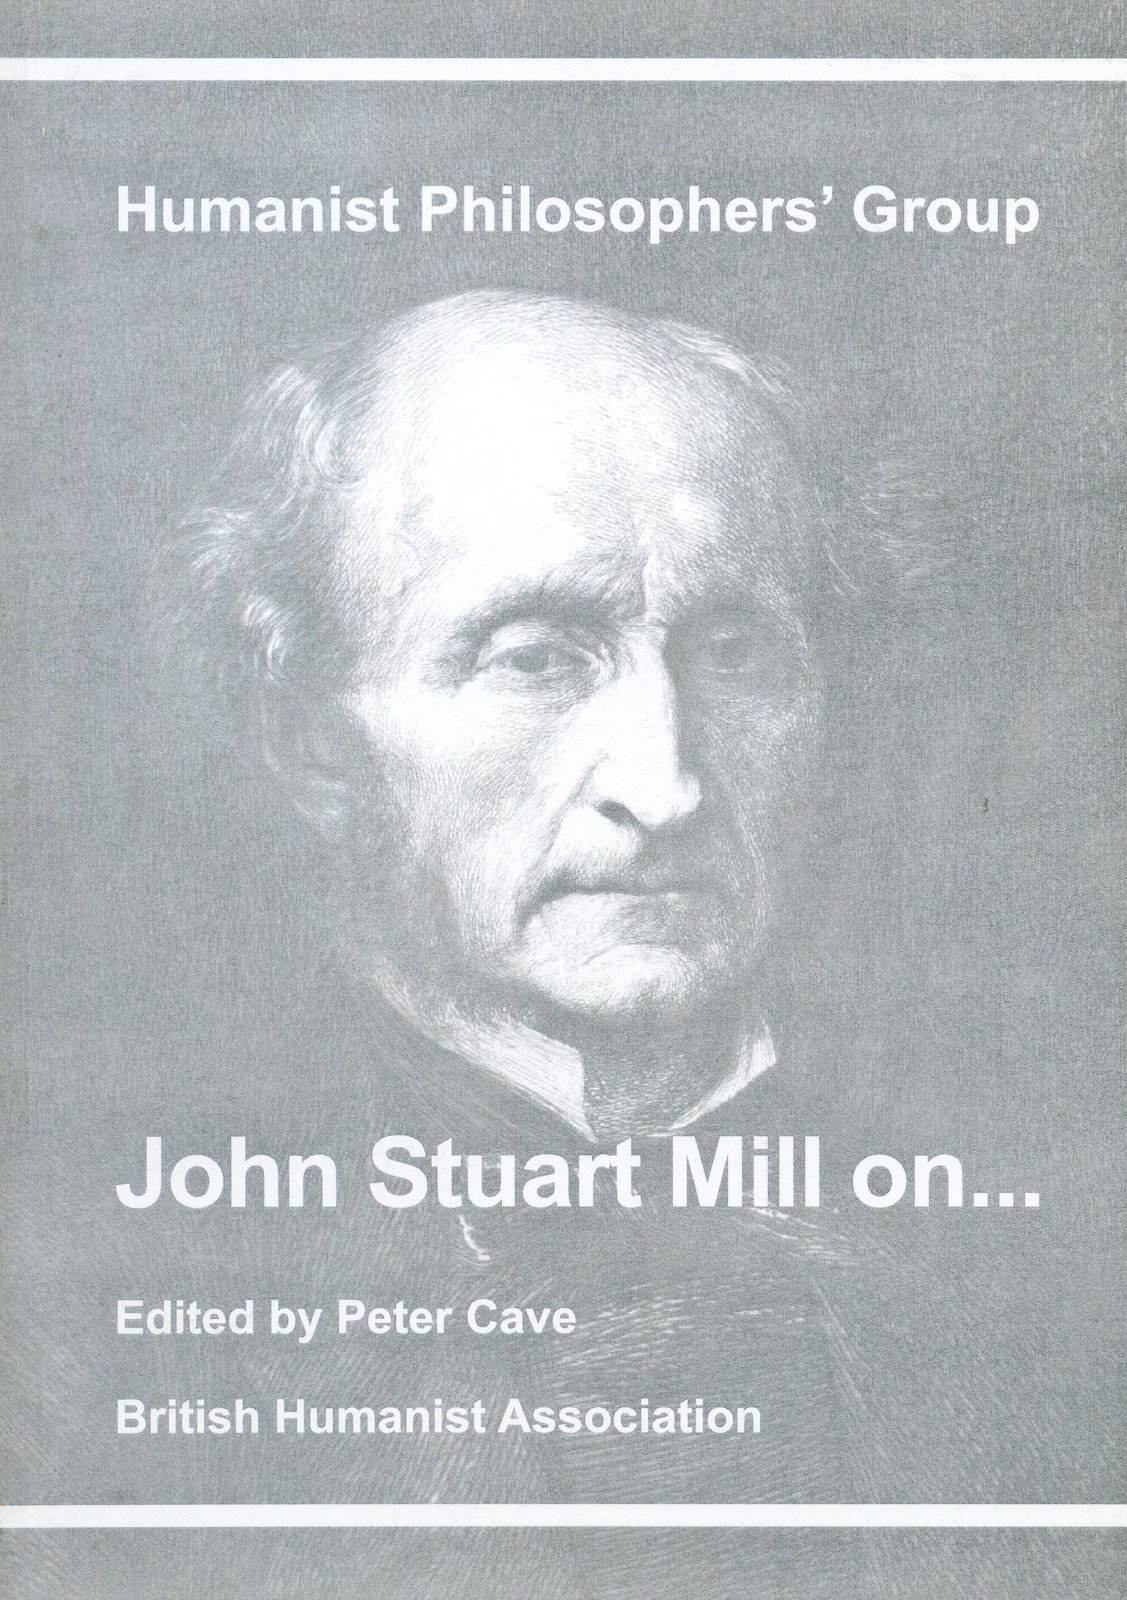 collected economics essay john mill society stuart works The collected works of john stuart mill, volume v - essays on economics and society part ii the collected works of john stuart mill, volume vi - essays on england, ireland, and the empire the collected works of john stuart mill, volume vii - a system of logic part i.